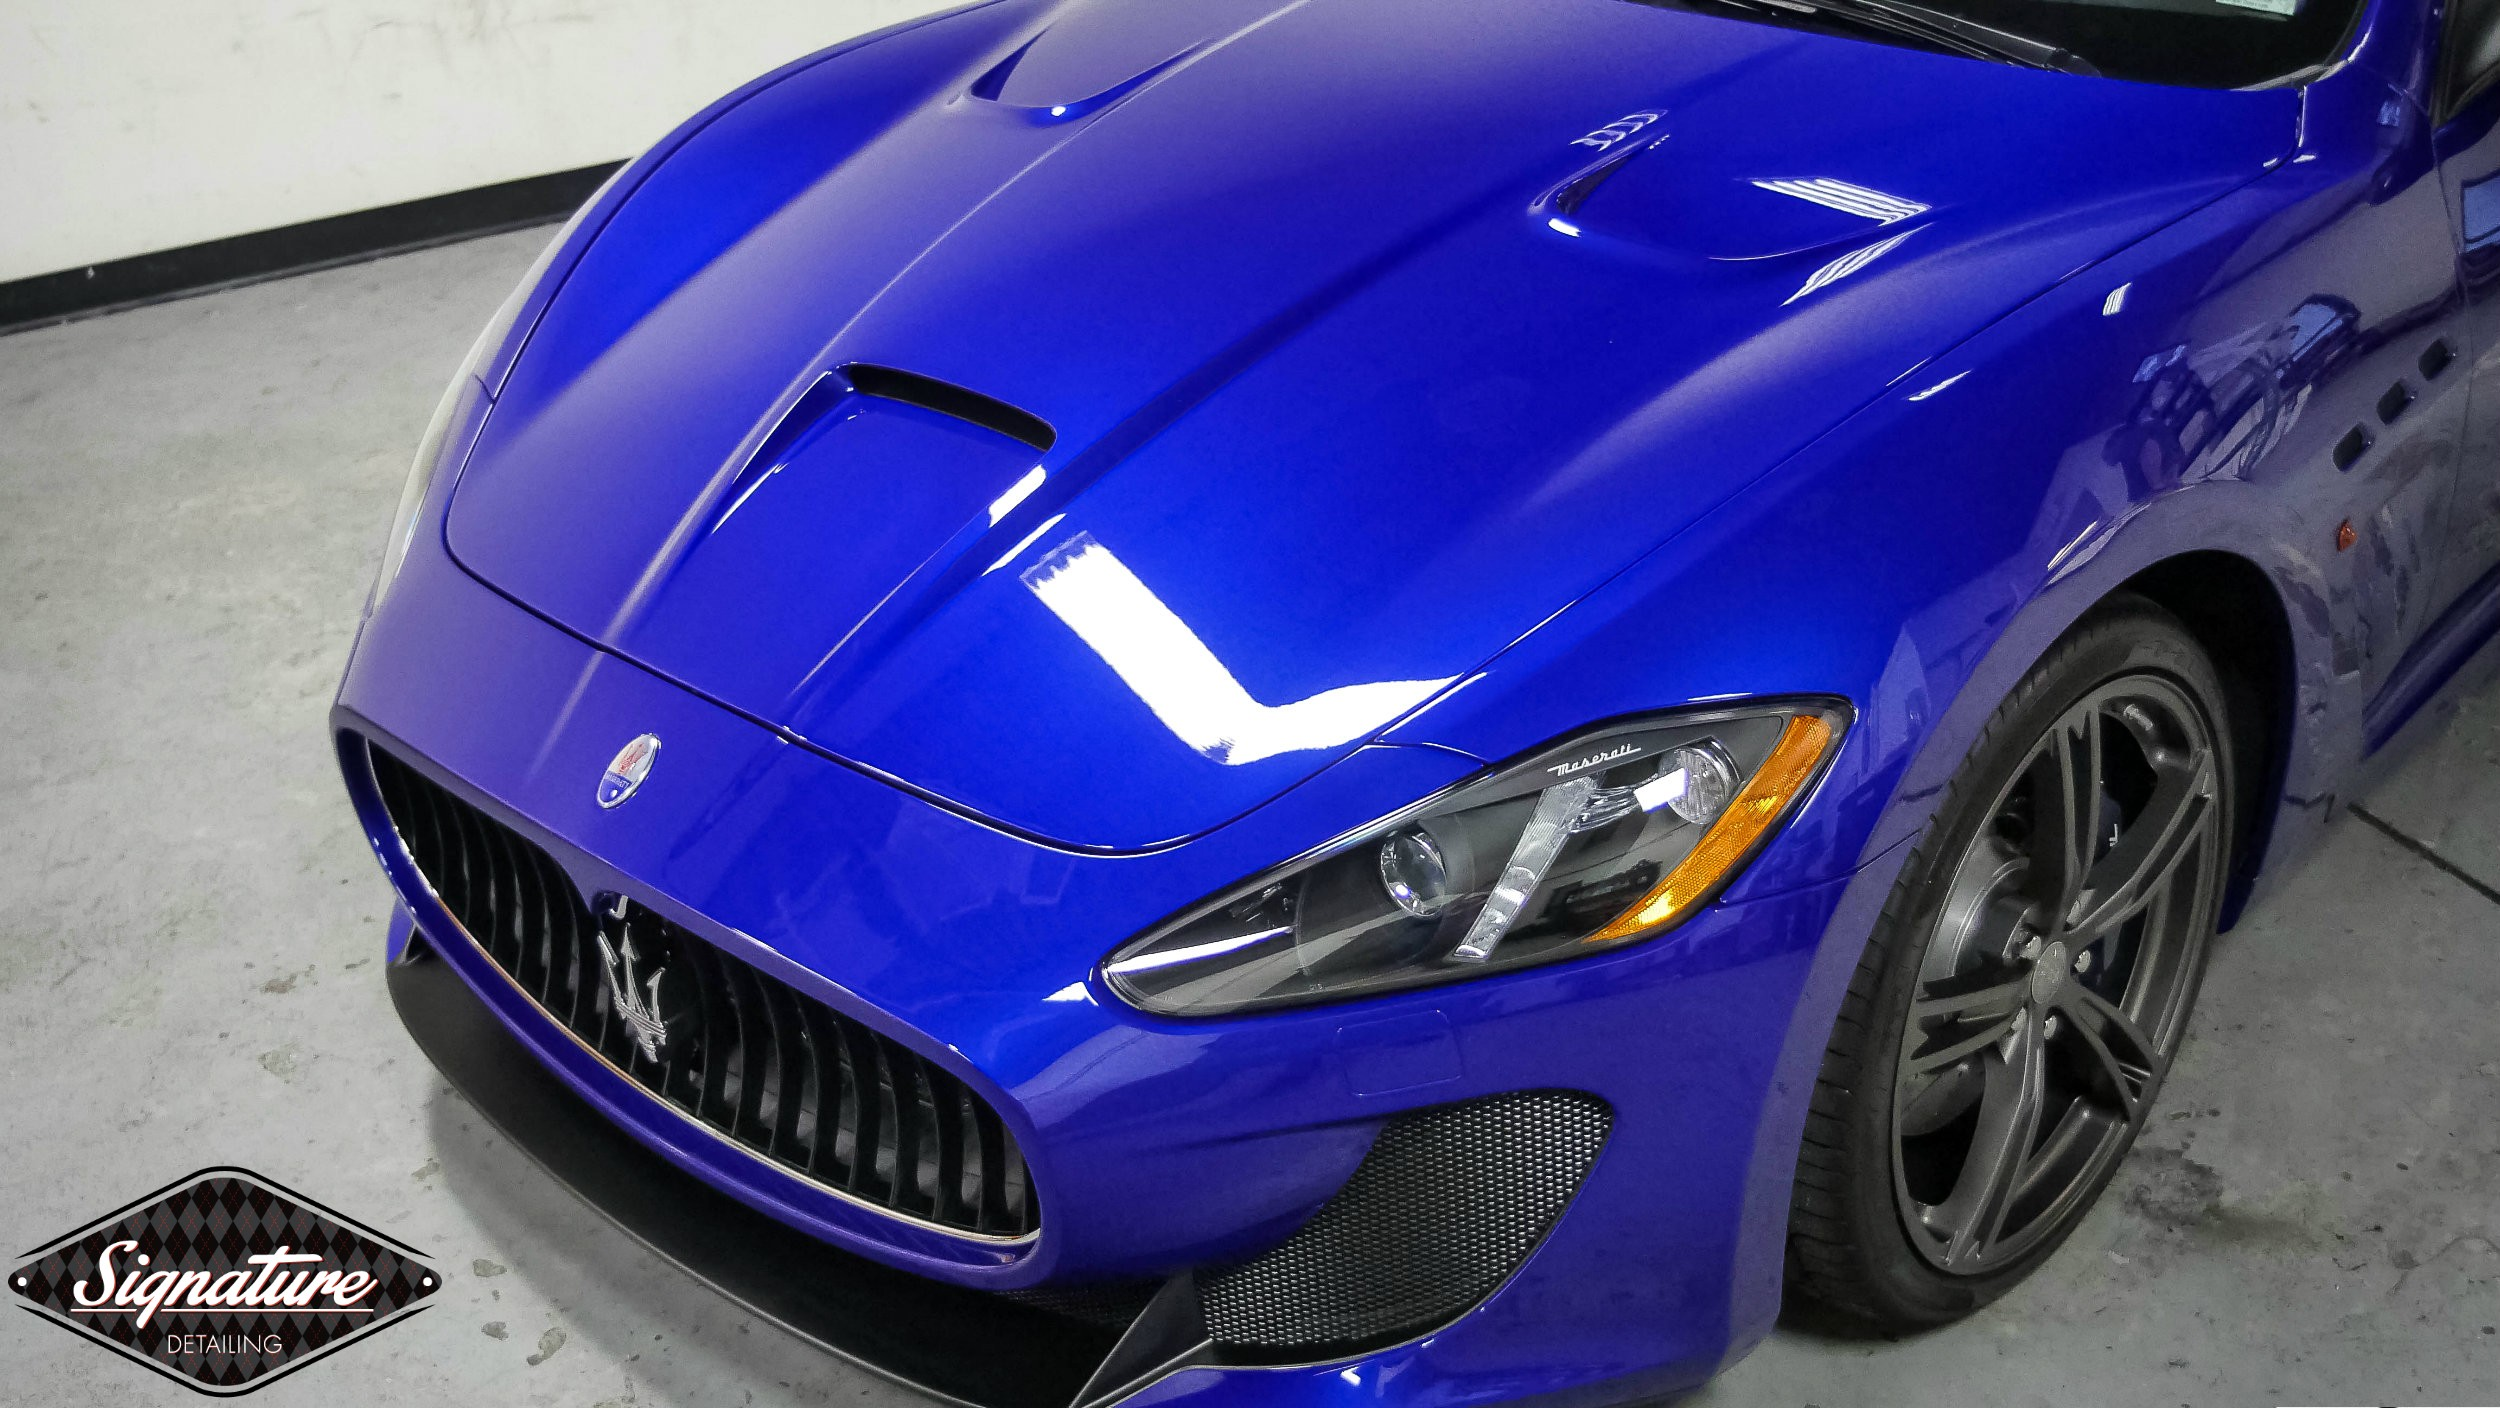 This Maserati was fully paint corrected at signature detailing nj.